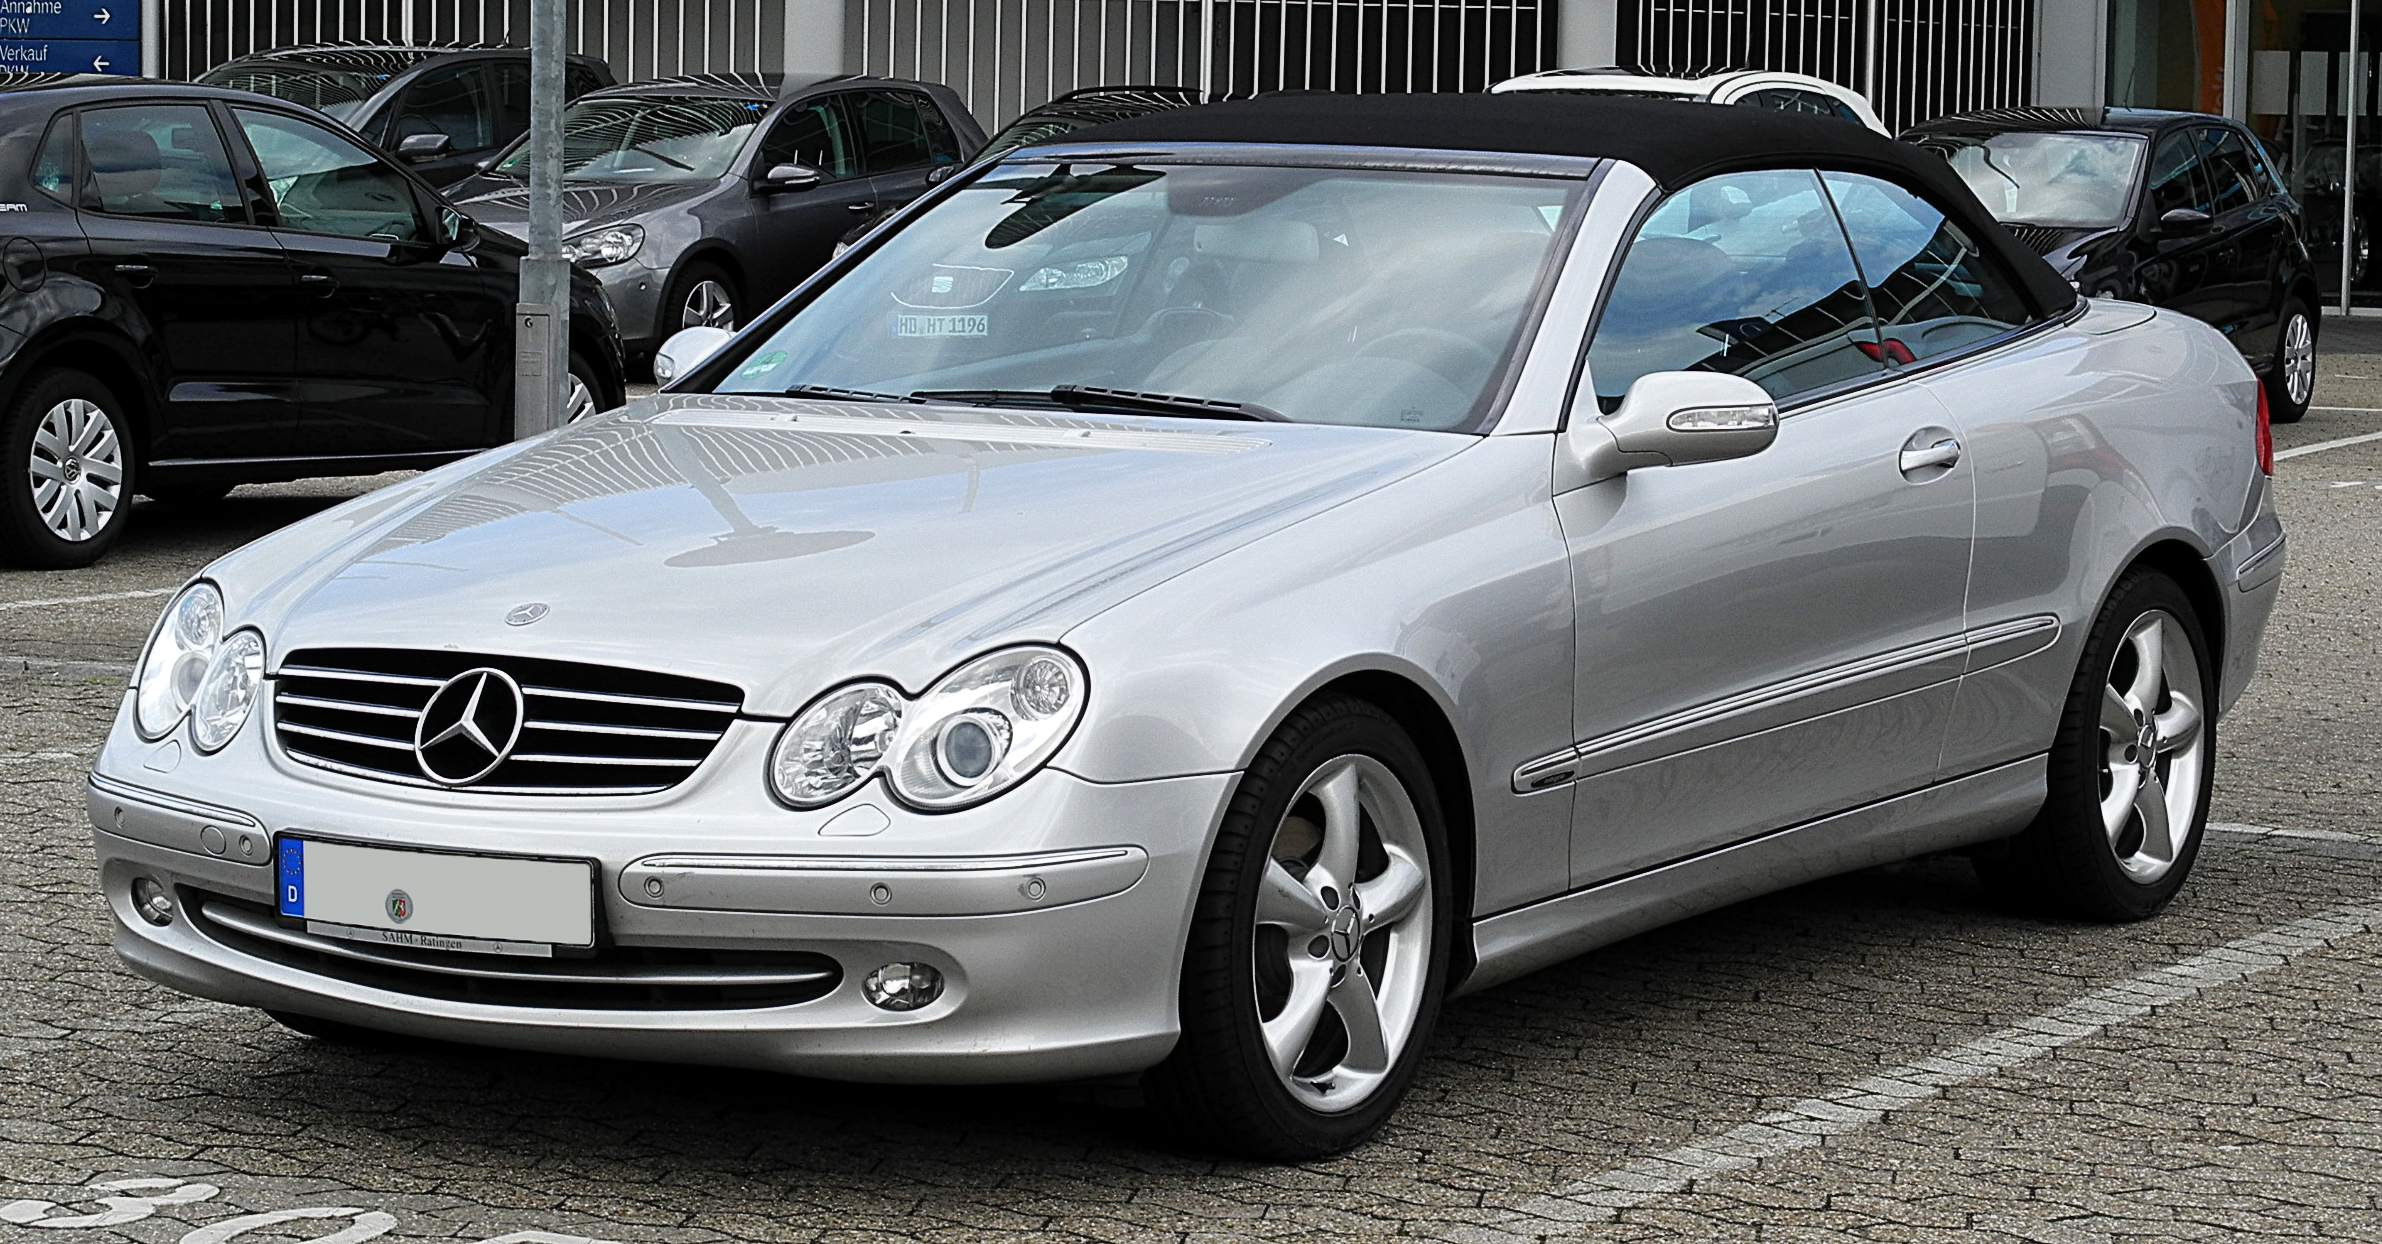 Mercedes clk 320 convertible manual for 320 mercedes benz